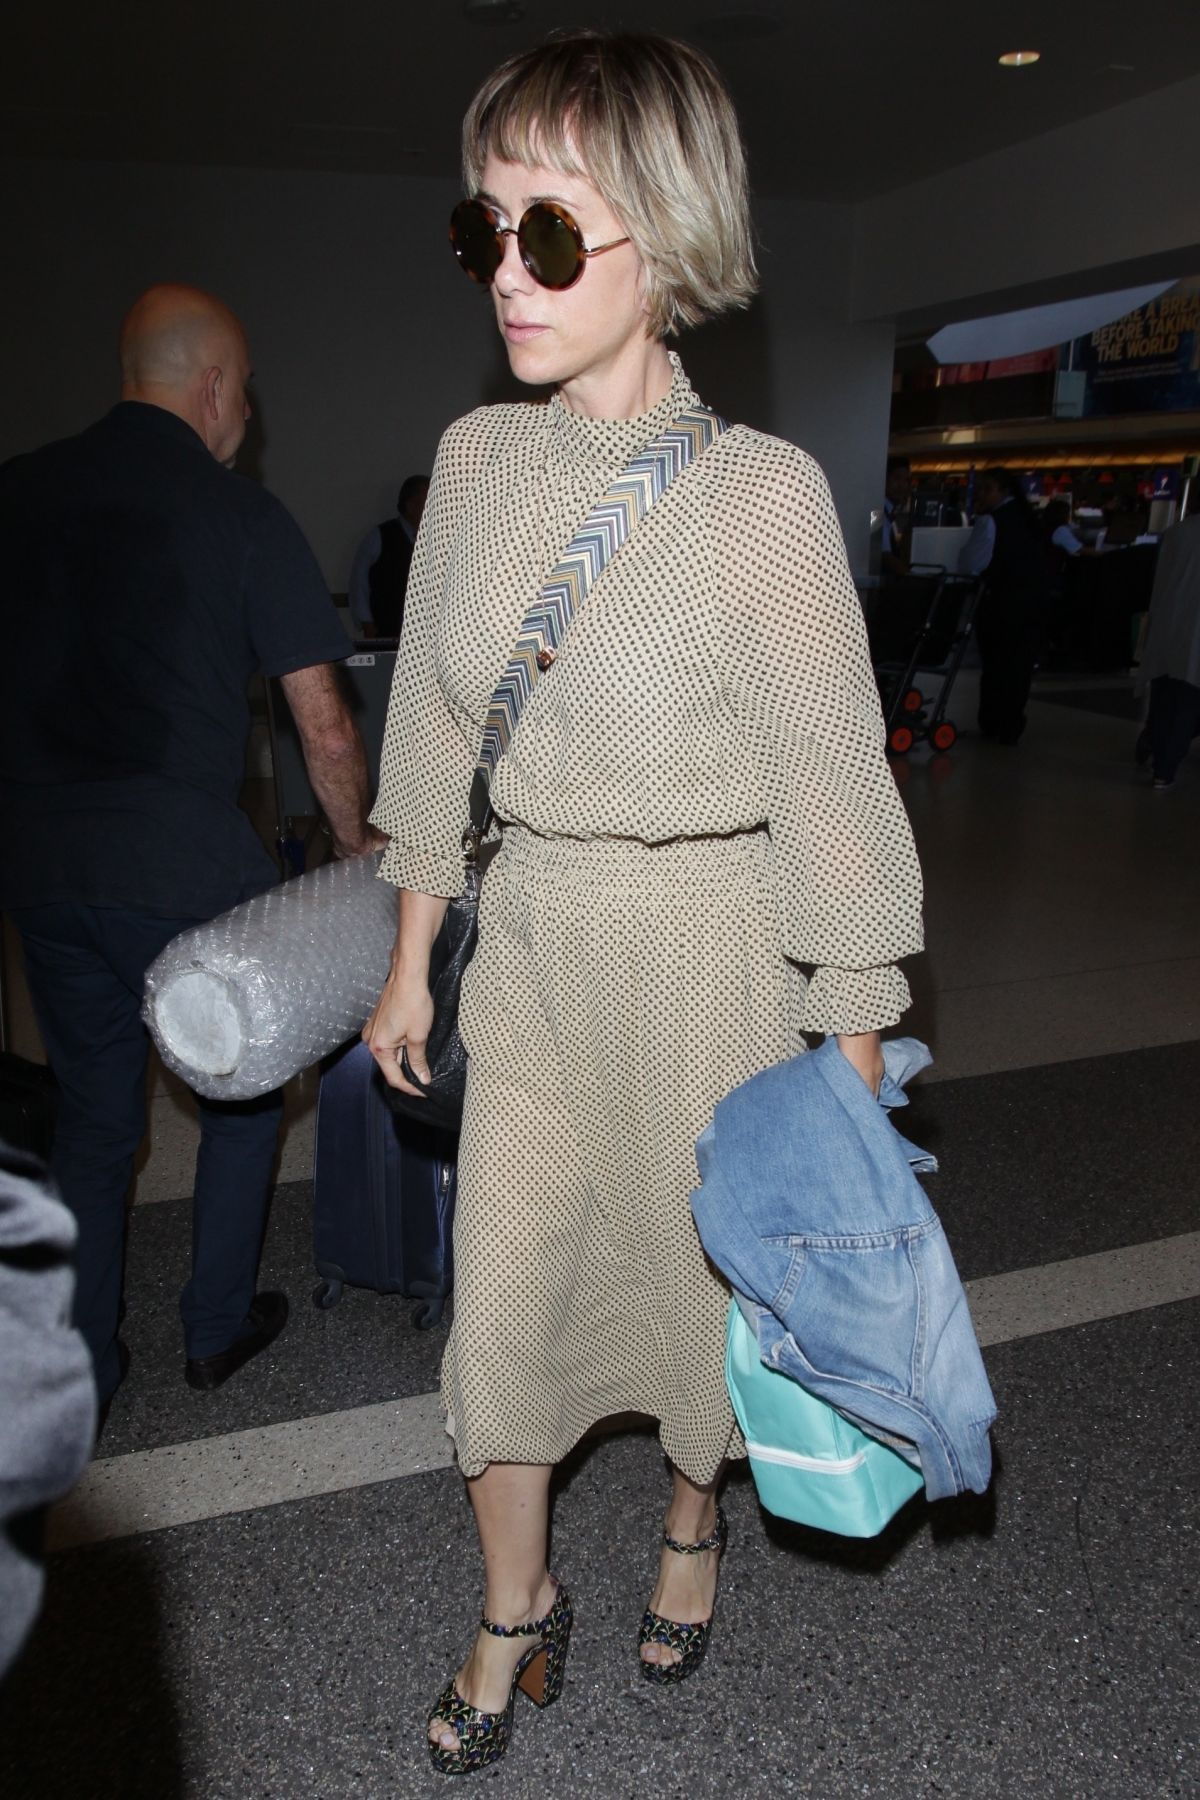 KRISTEN WIIG at Los Angeles International Airport 08/24/2017